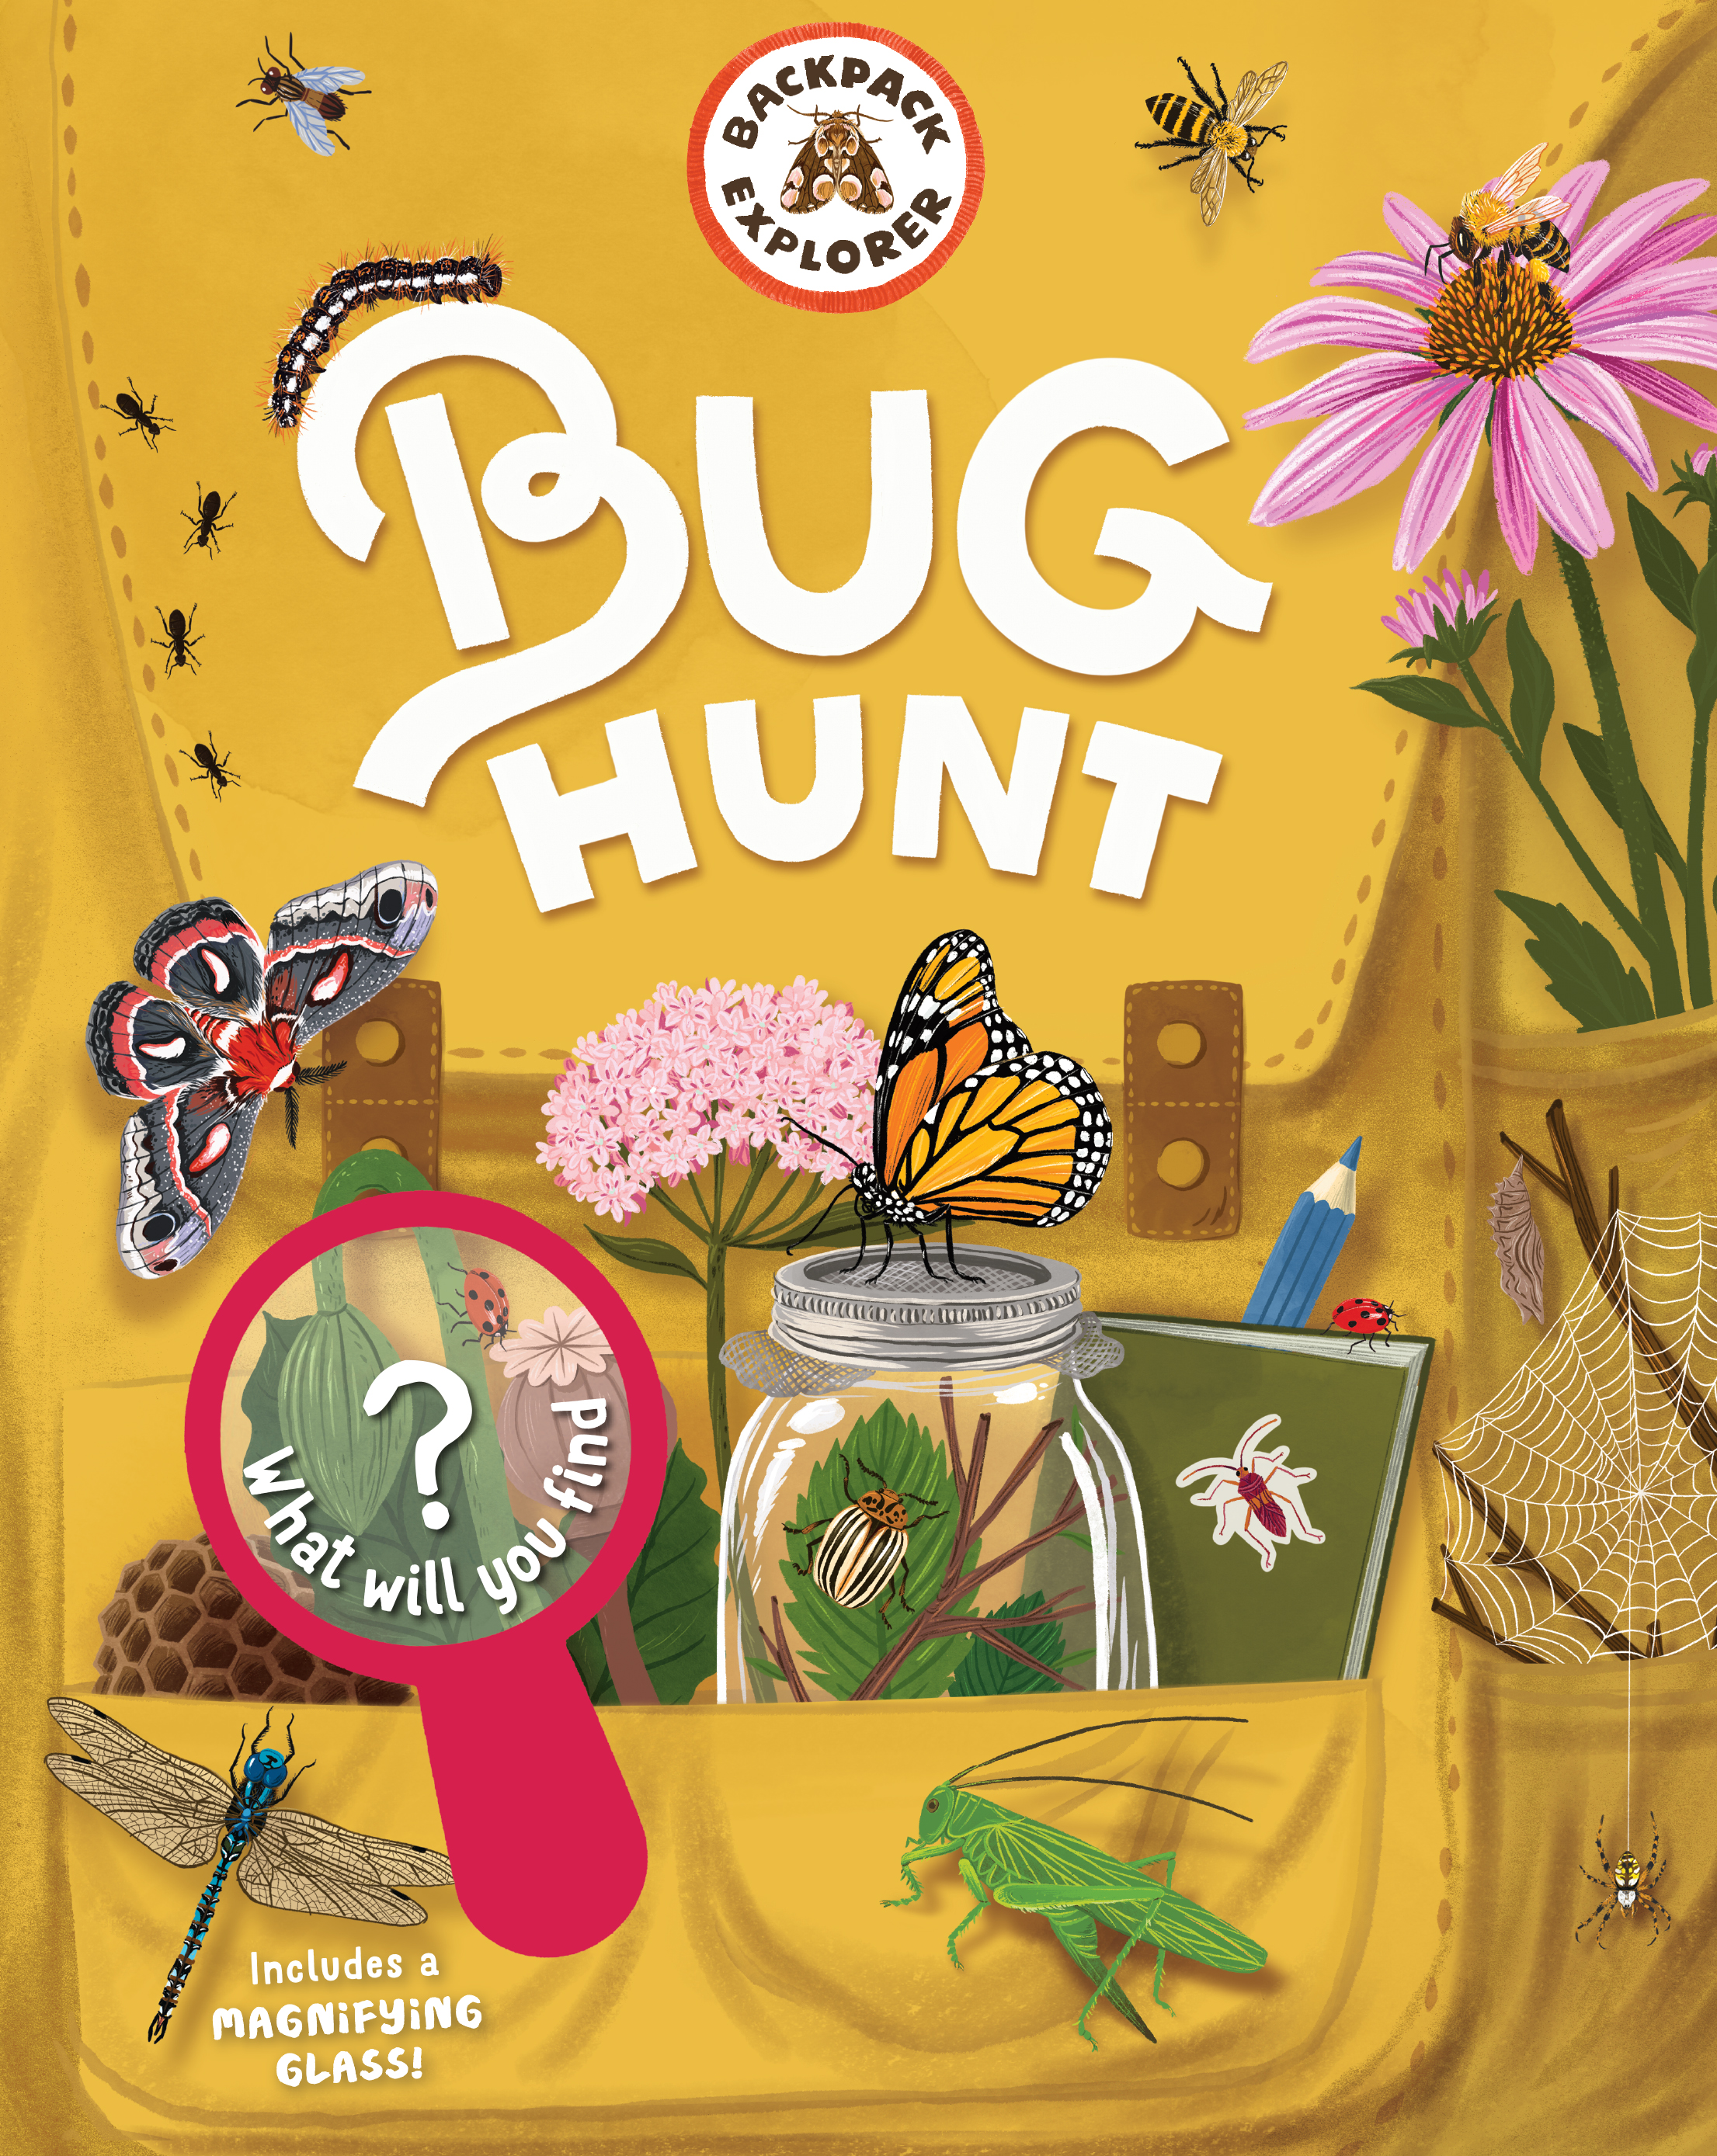 Backpack Explorer: Bug Hunt What Will You Find? - Editors of Storey Publishing